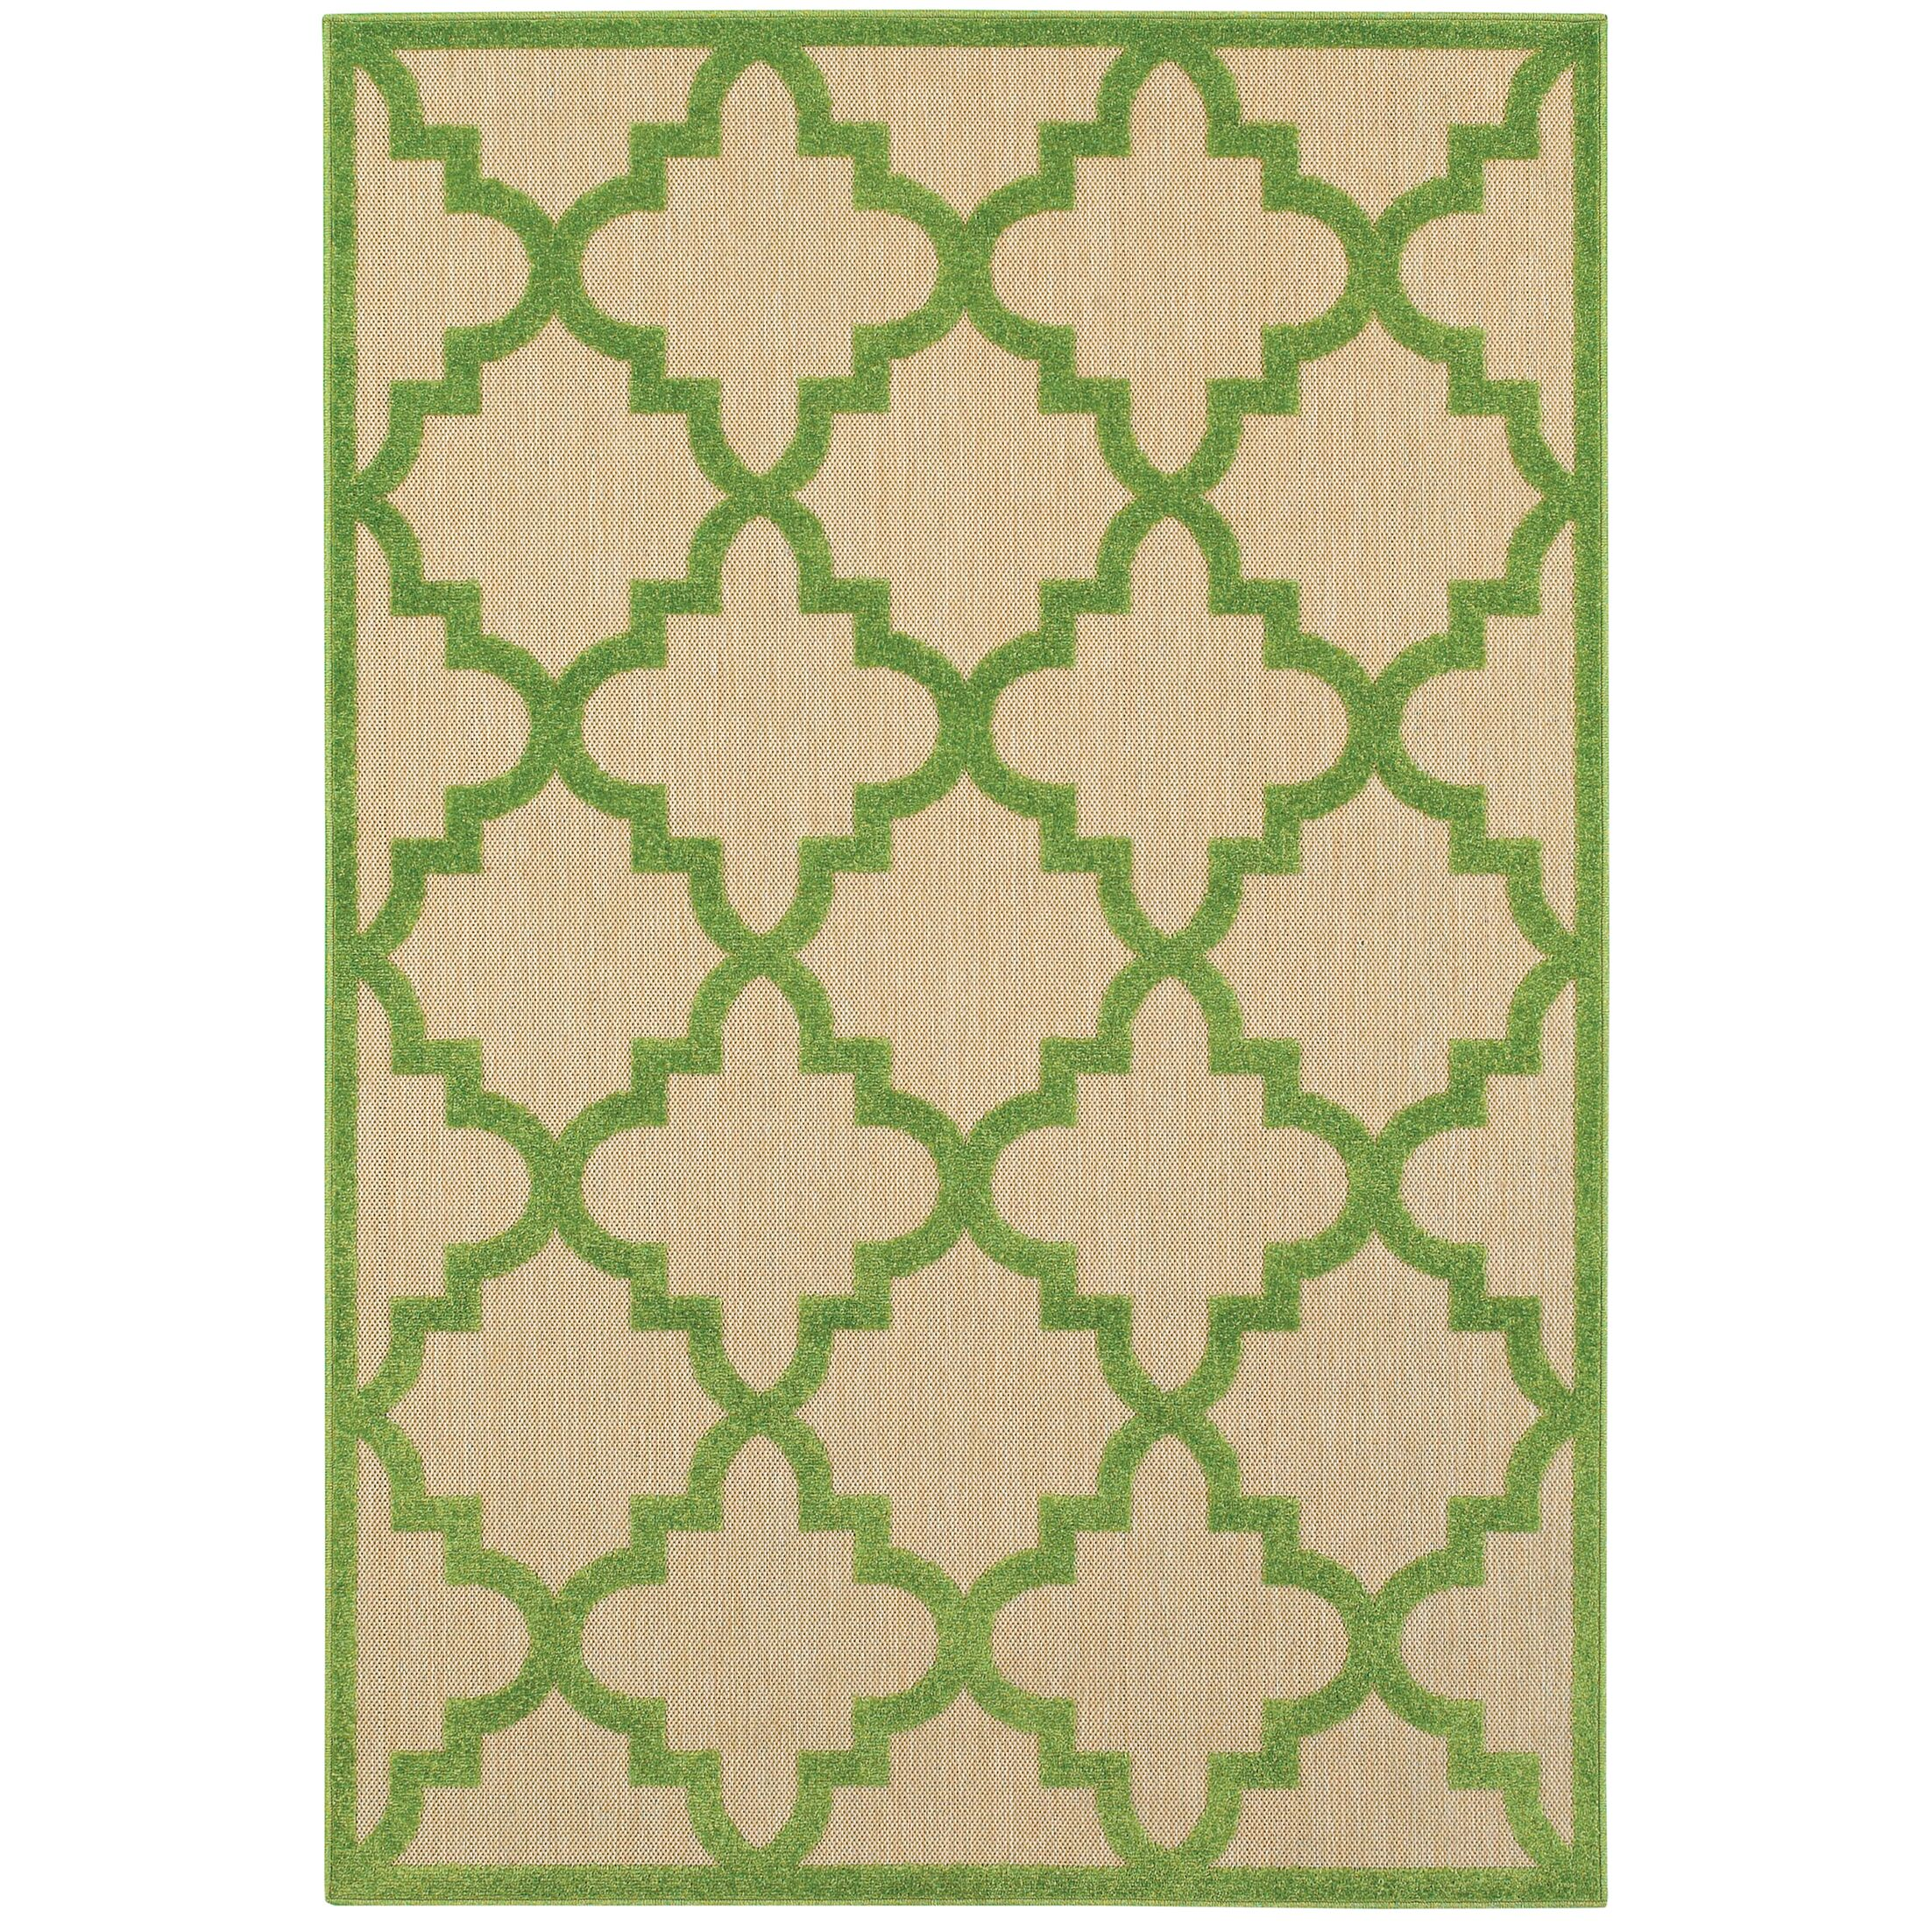 Winchcombe Sand/Green Outdoor Area Rug Rug Size: Rectangle 7'10